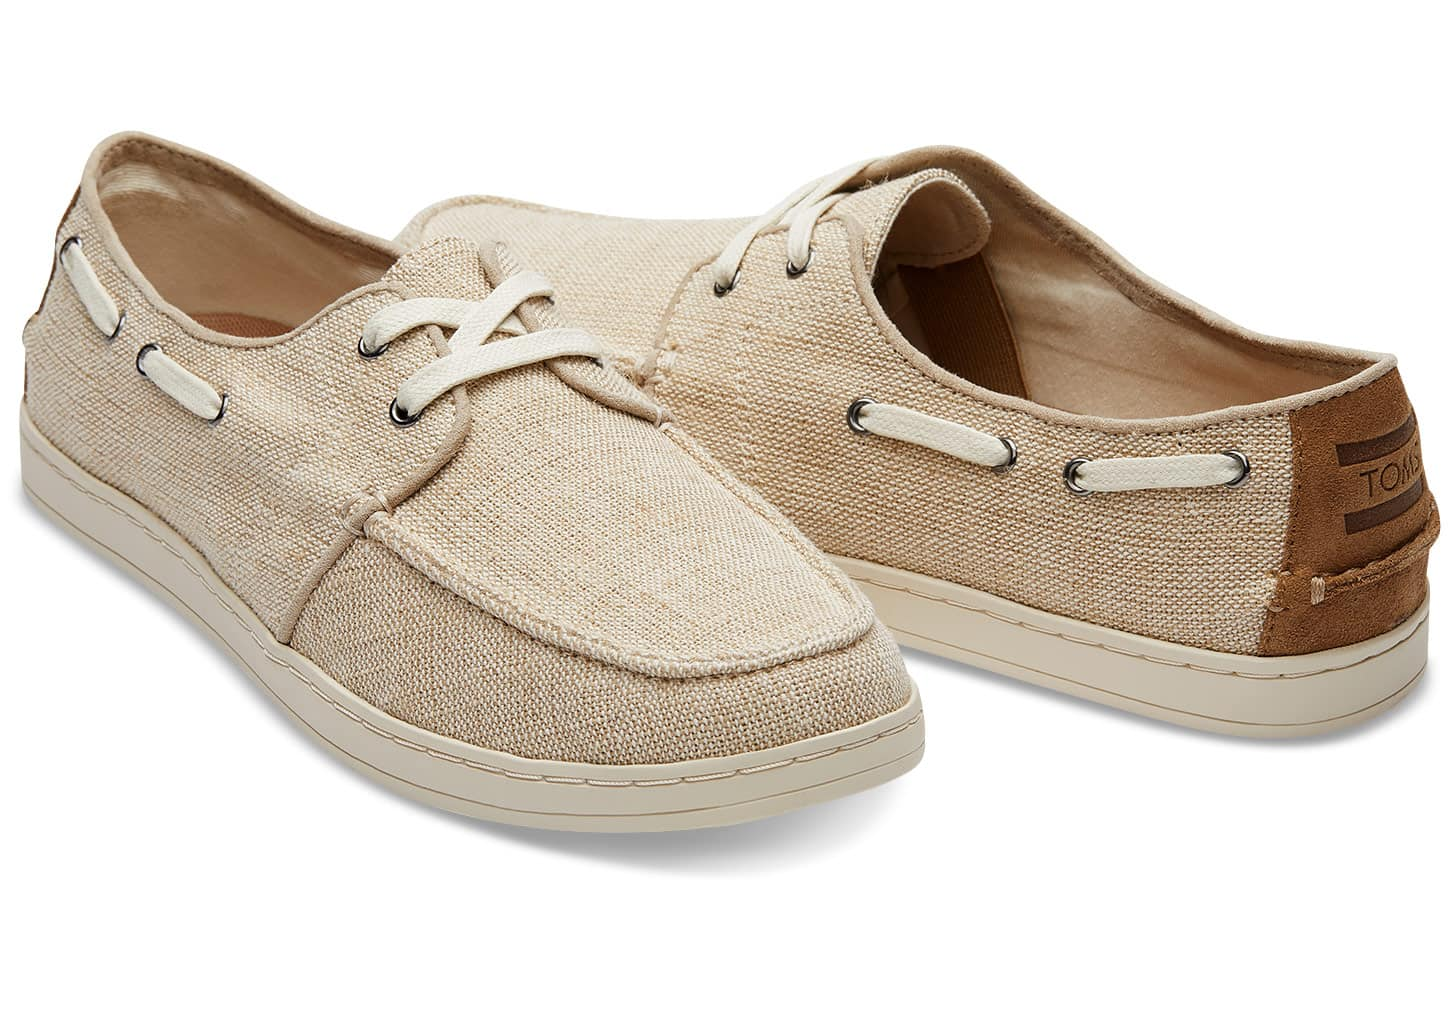 TOMS Surprise Sale: Men's Culver Boat Shoes $24.99, Women's Embroidered Classics $19.99 & More + Free S/H $60+